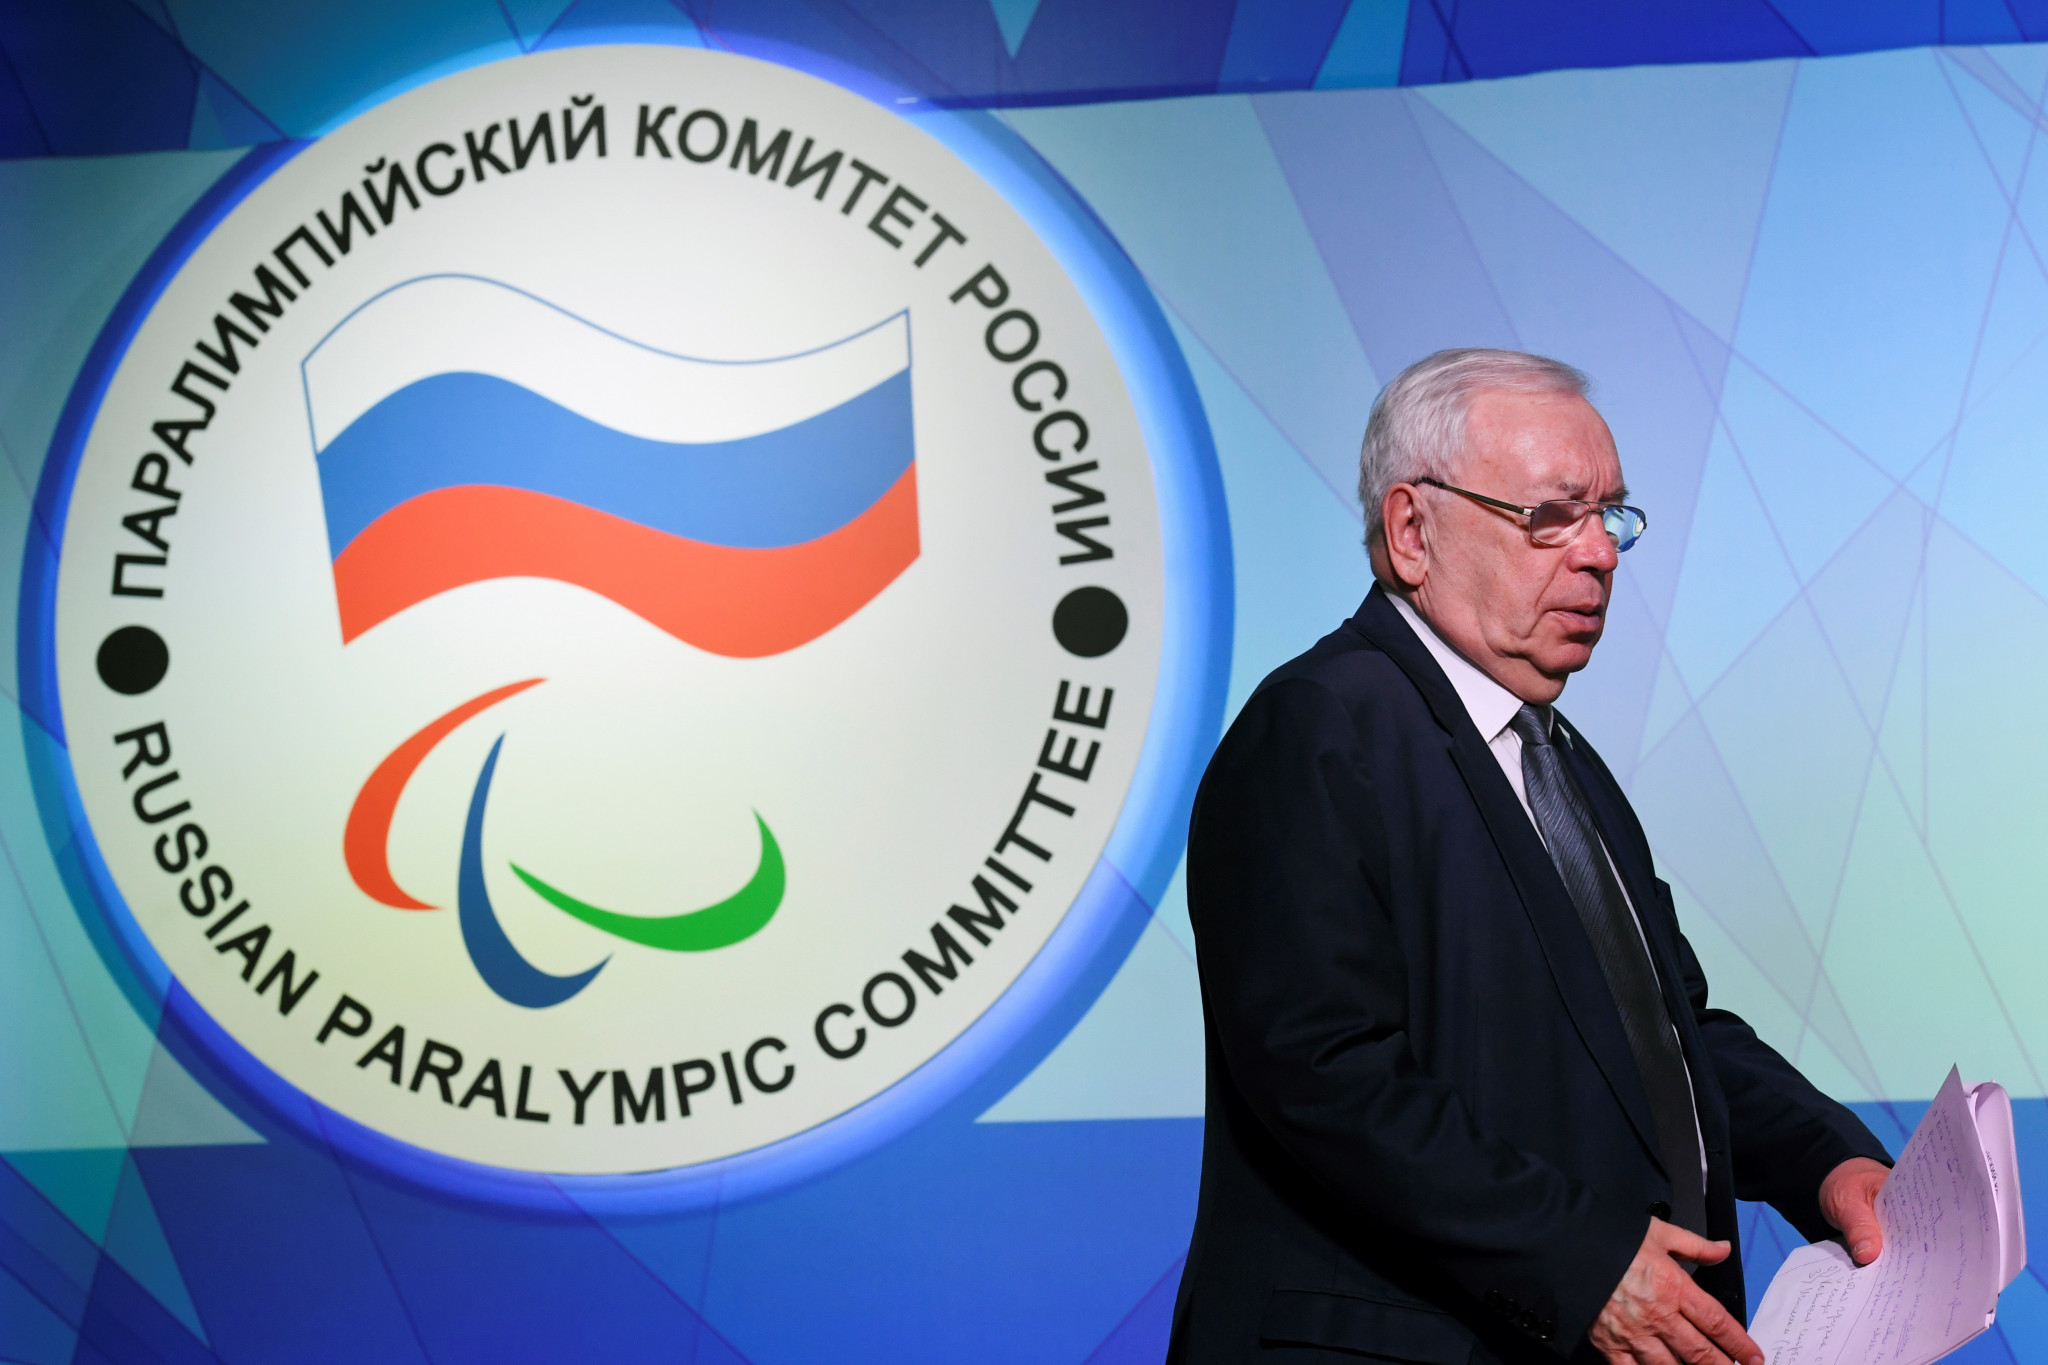 The Russian Paralympic Committee remain suspended by the IPC ©Getty Images